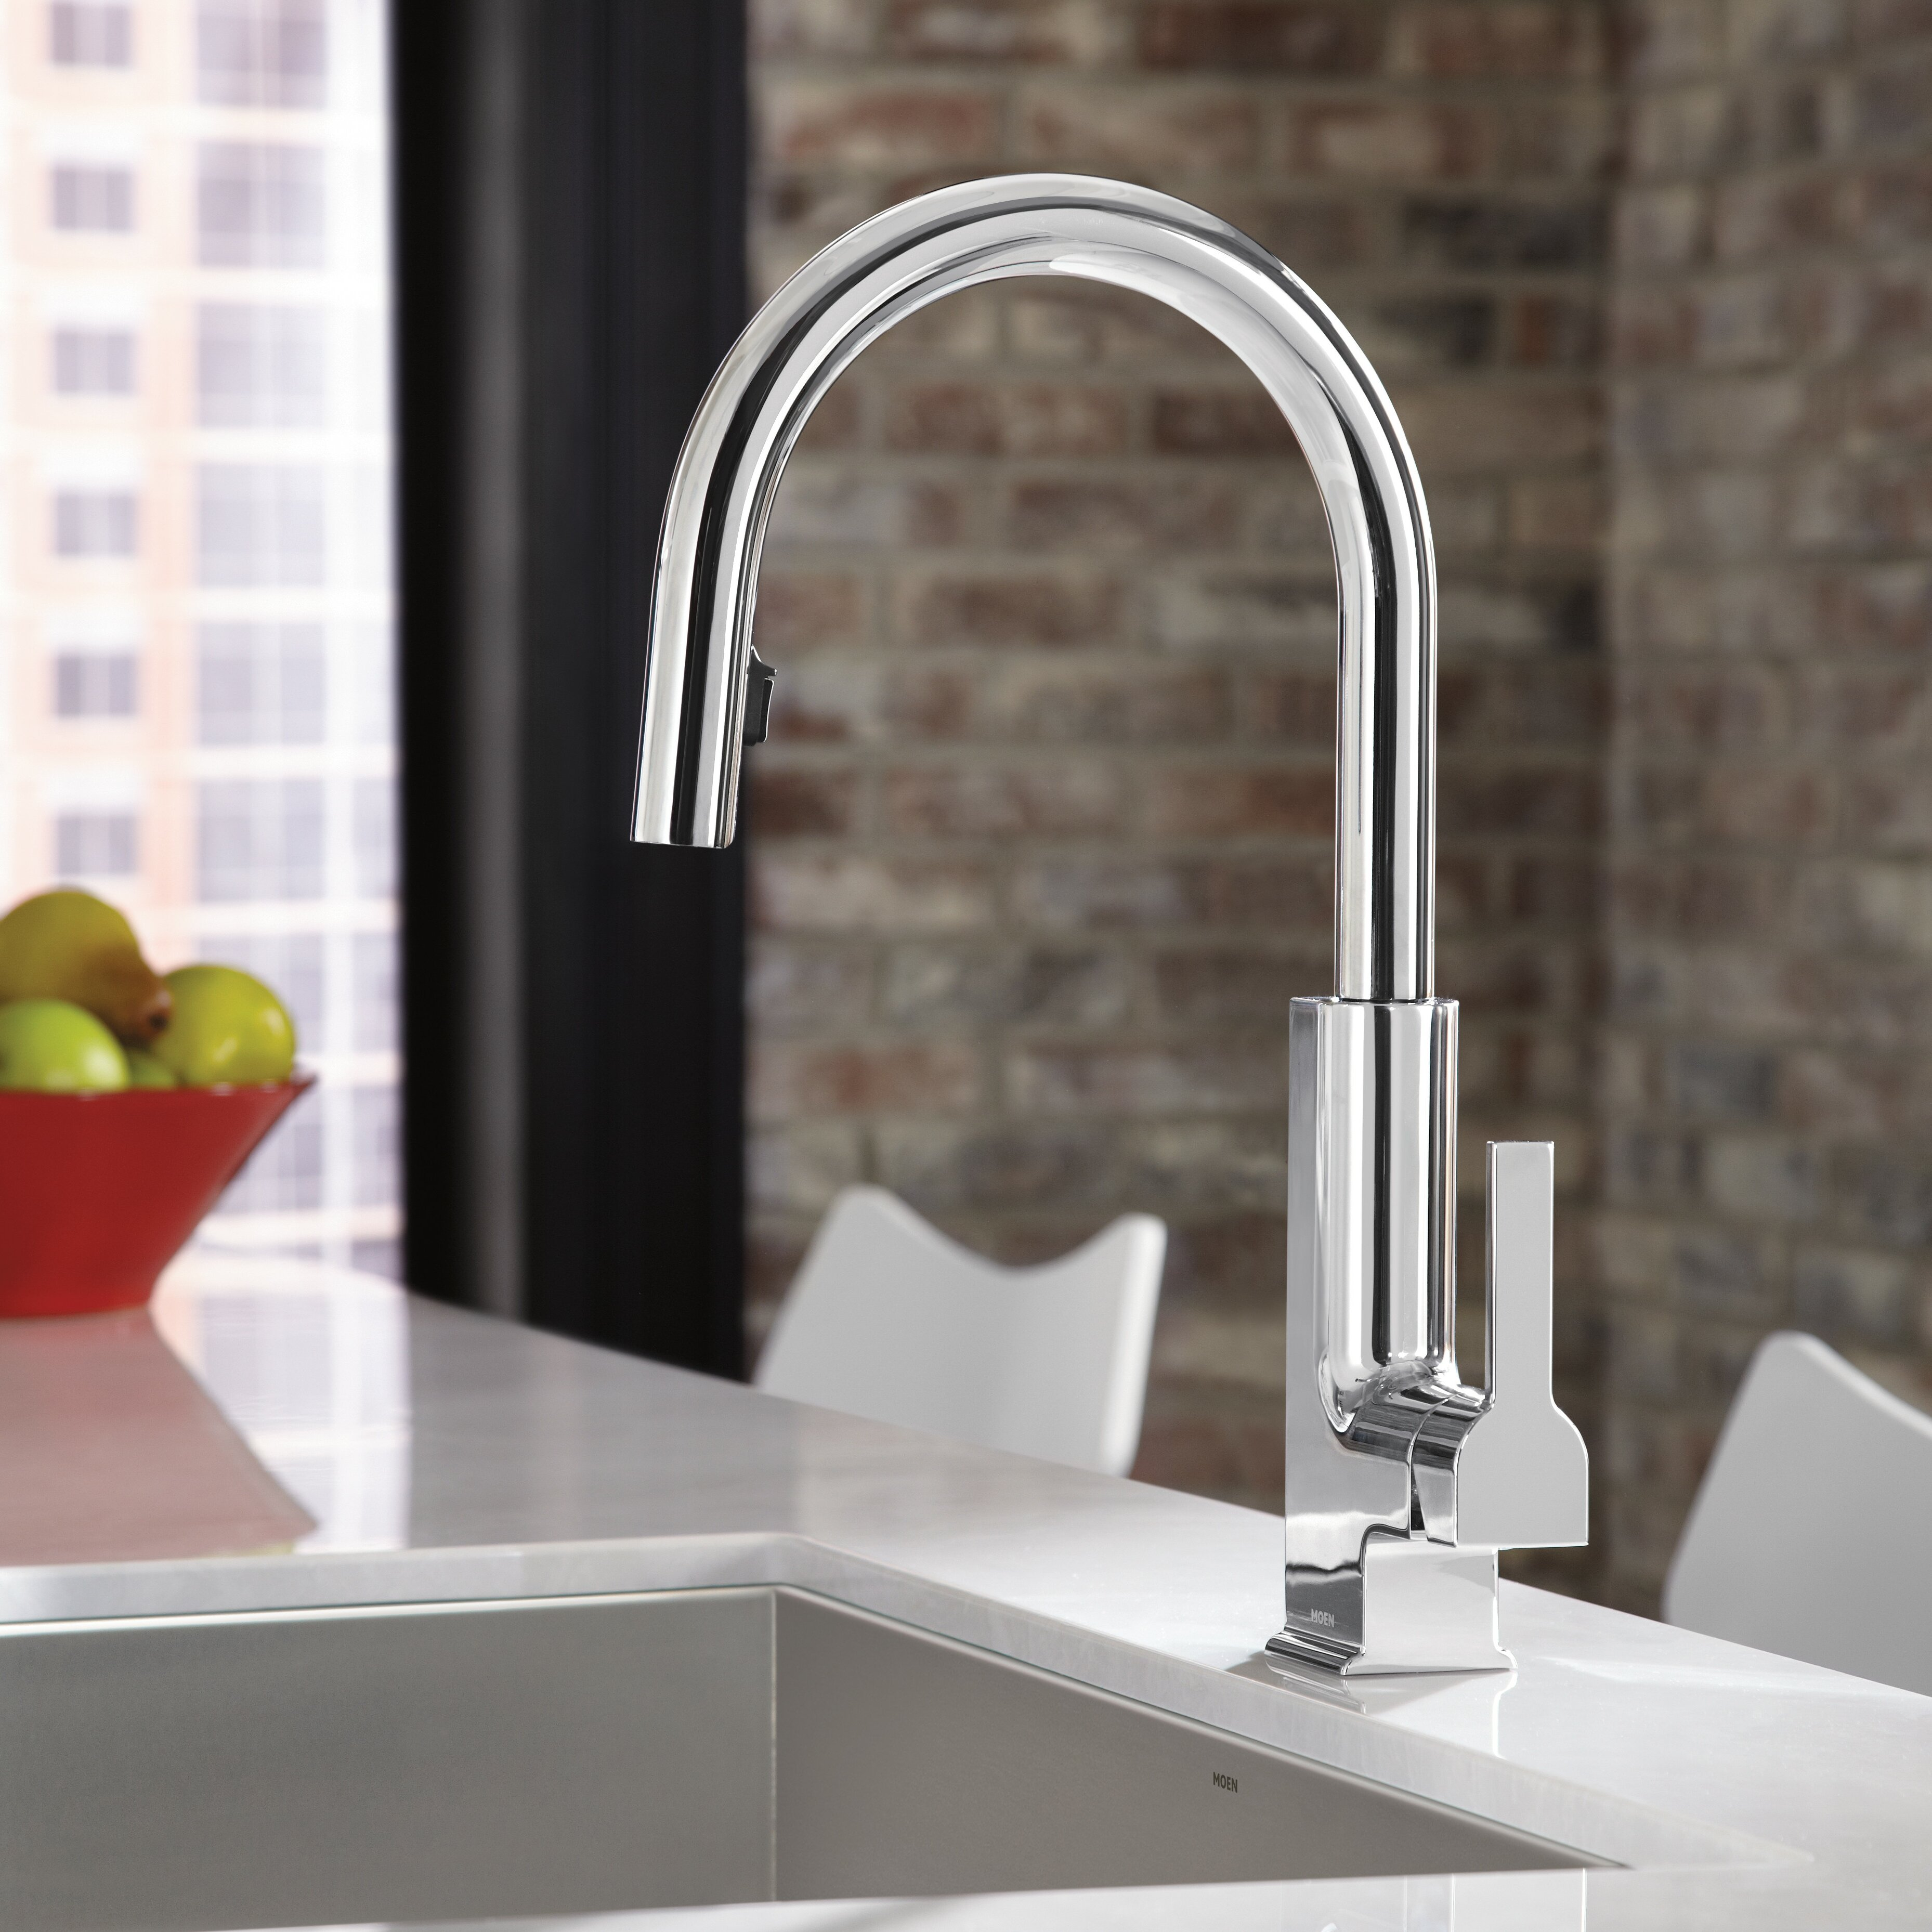 Moen Touchless Kitchen Faucet Moen Sto Single Handle Pull Down Kitchen Faucet Reviews Wayfair